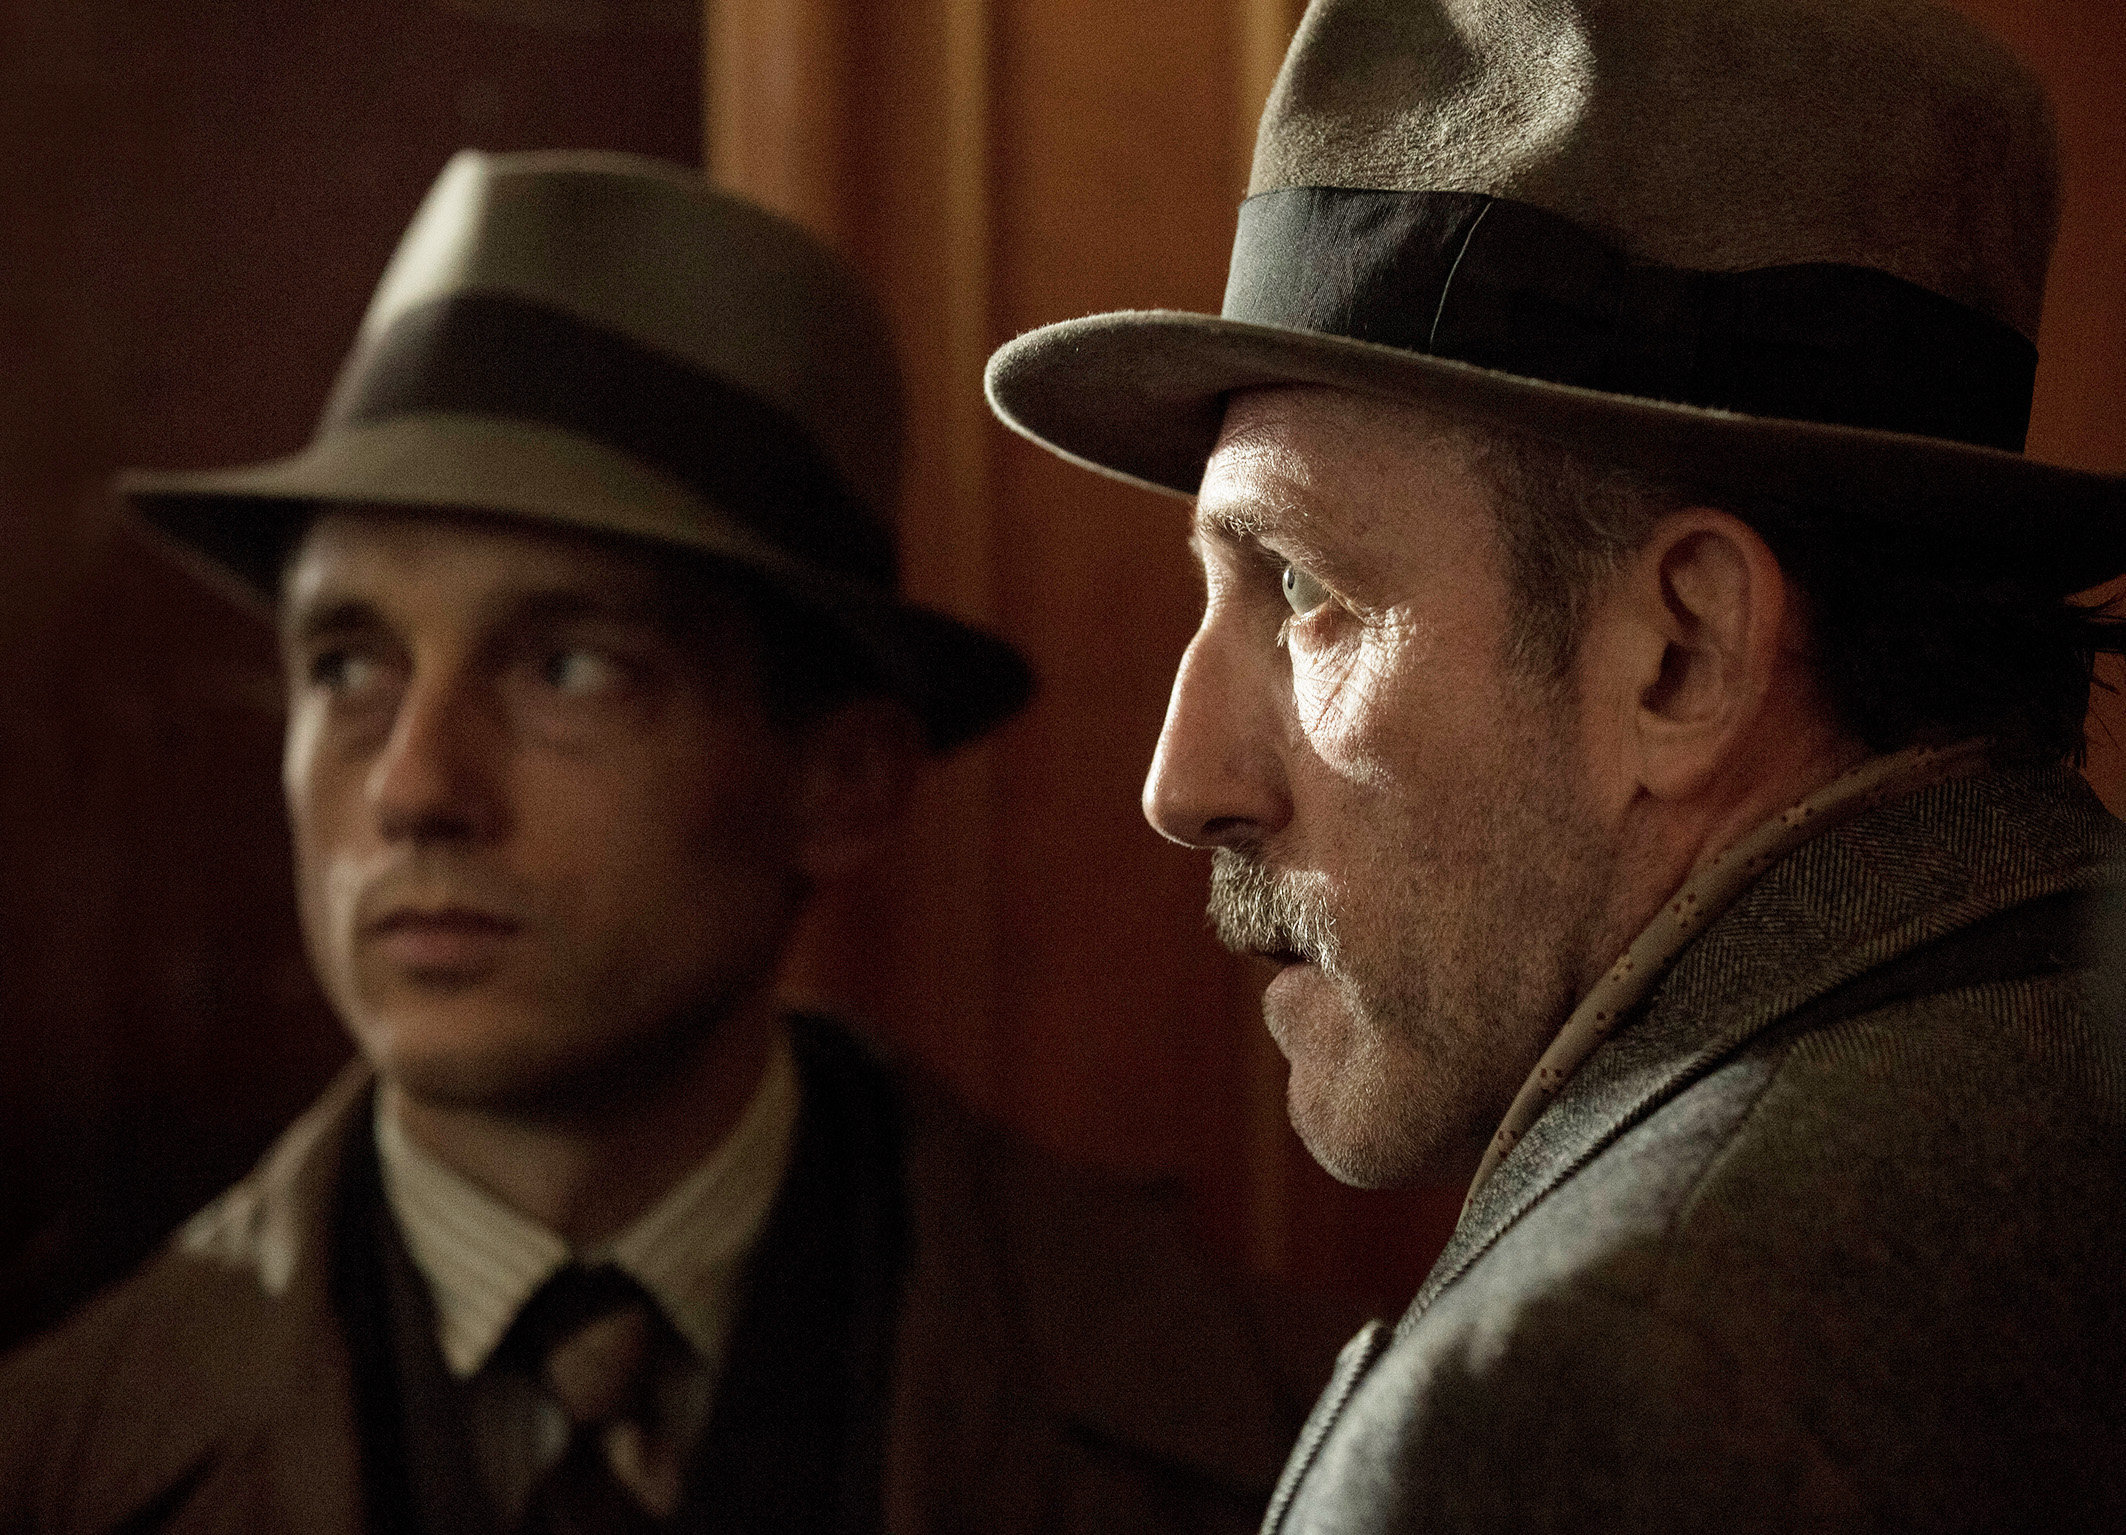 Babylon Berlin S02 E03